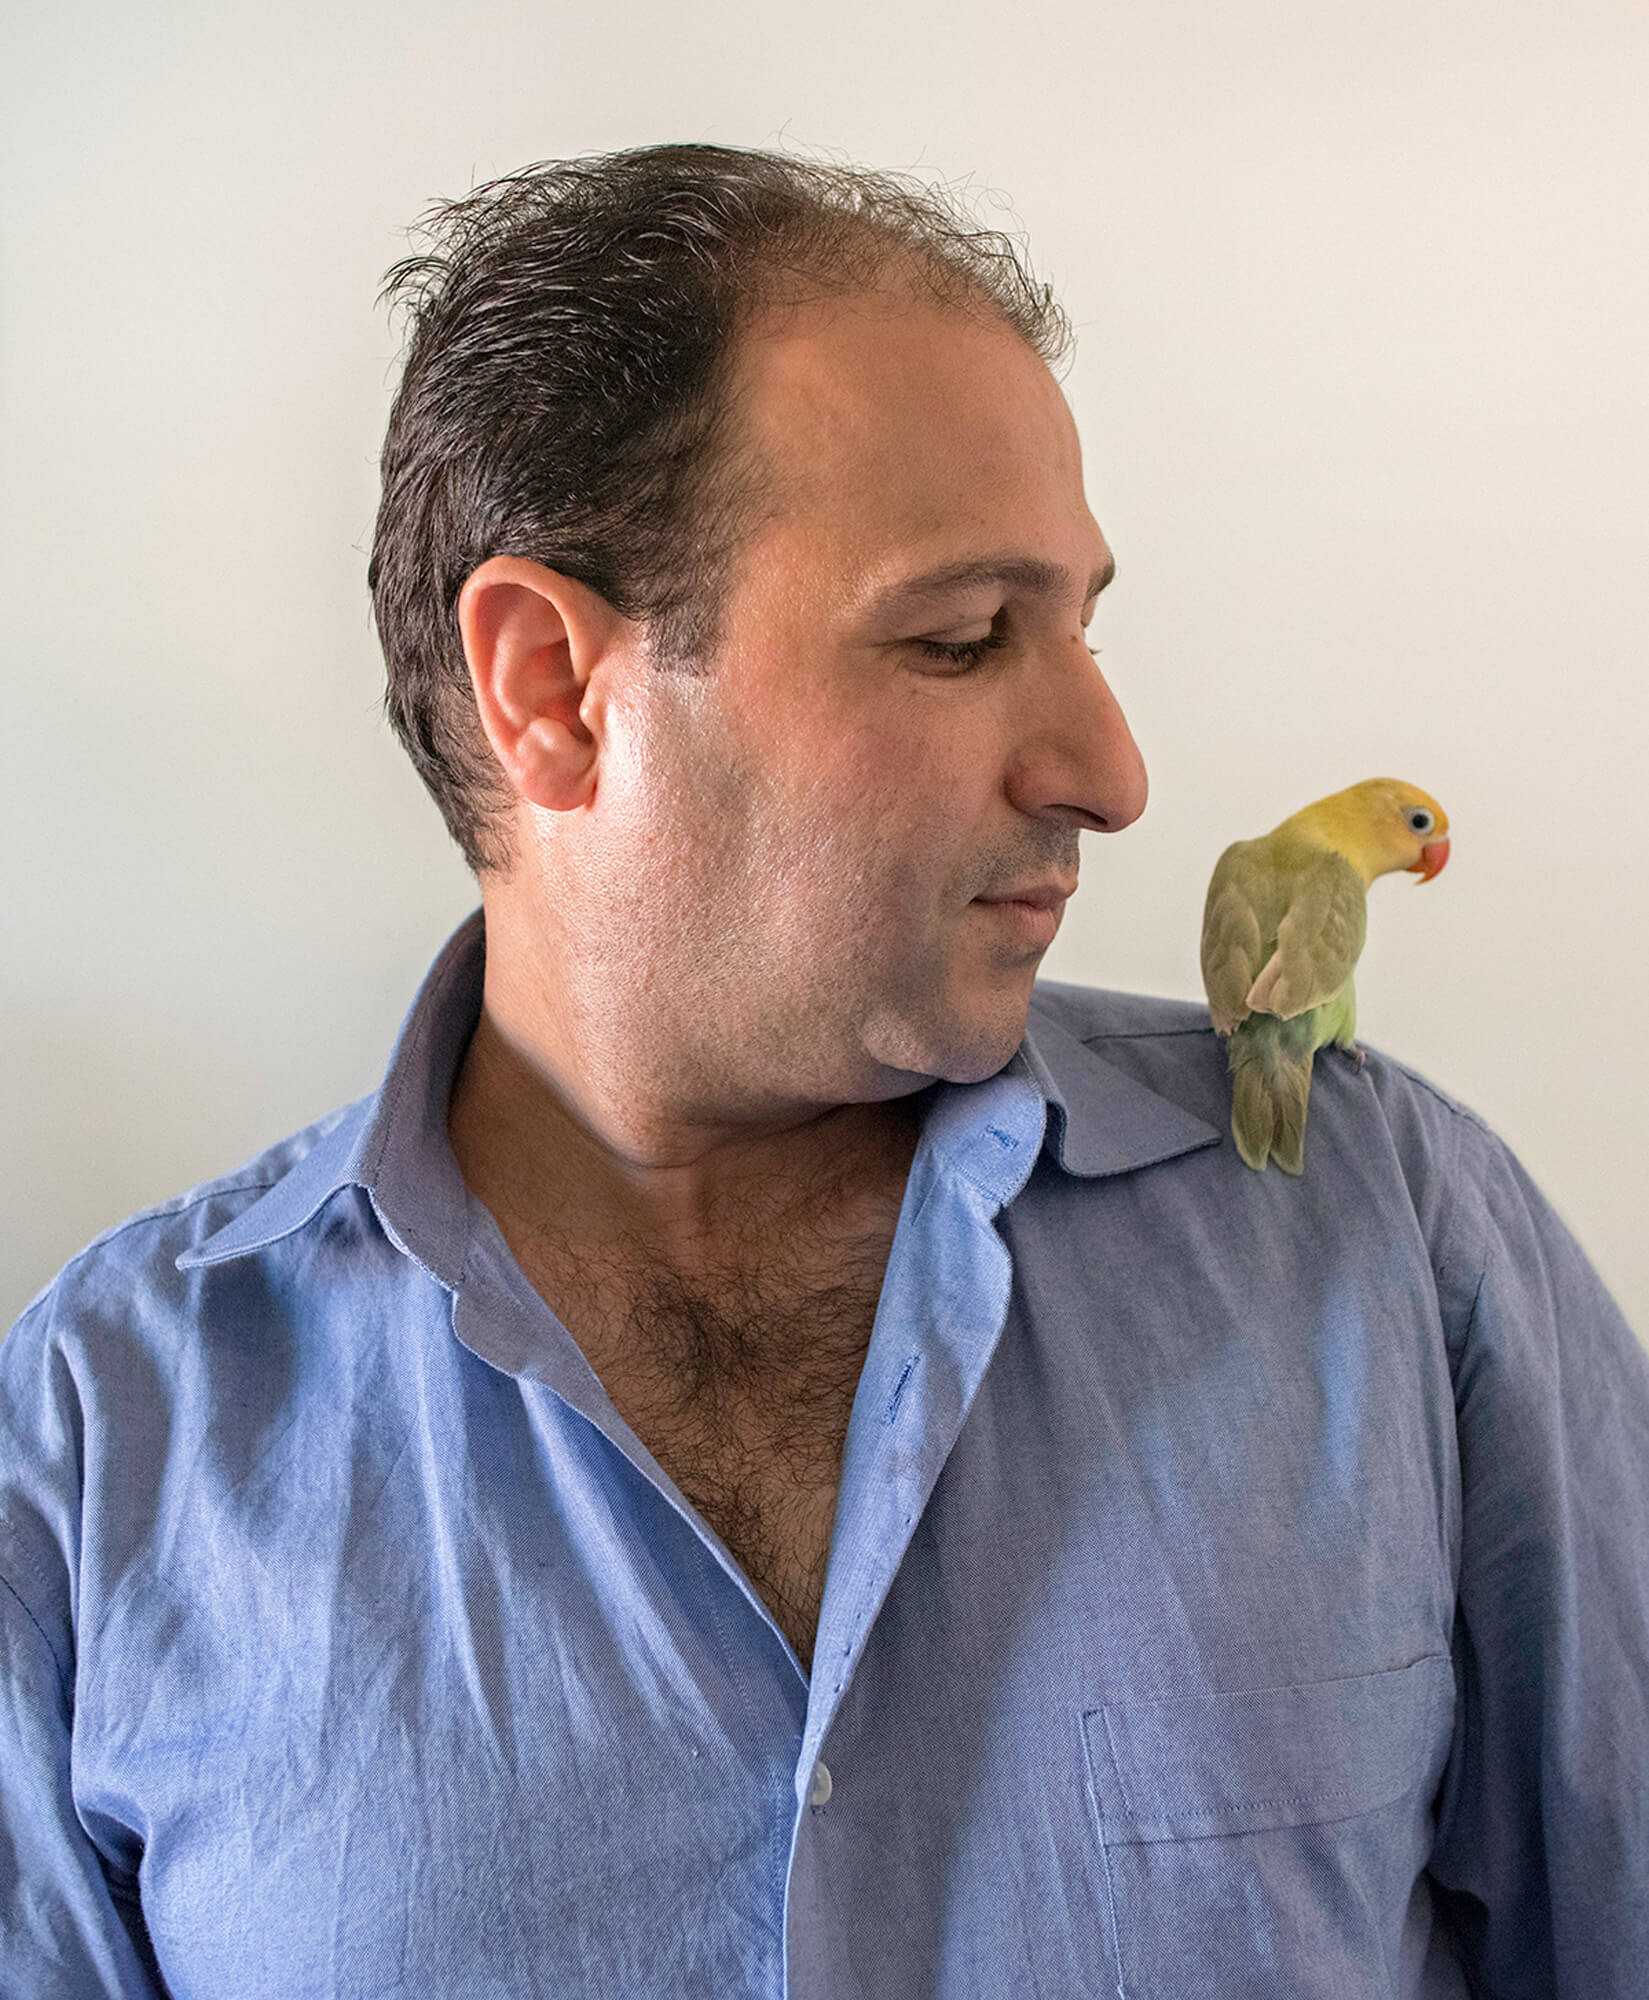 Hani Keddo with his Lovebird. Before he and his family were resettled in Clarkston, Hani owned his own shop in Syria that sold handbags and shoes. However, his shop was bombed, and he lost everything. Hani now drives a van pool, helping others in the Clarkston refugee community who need transportation.